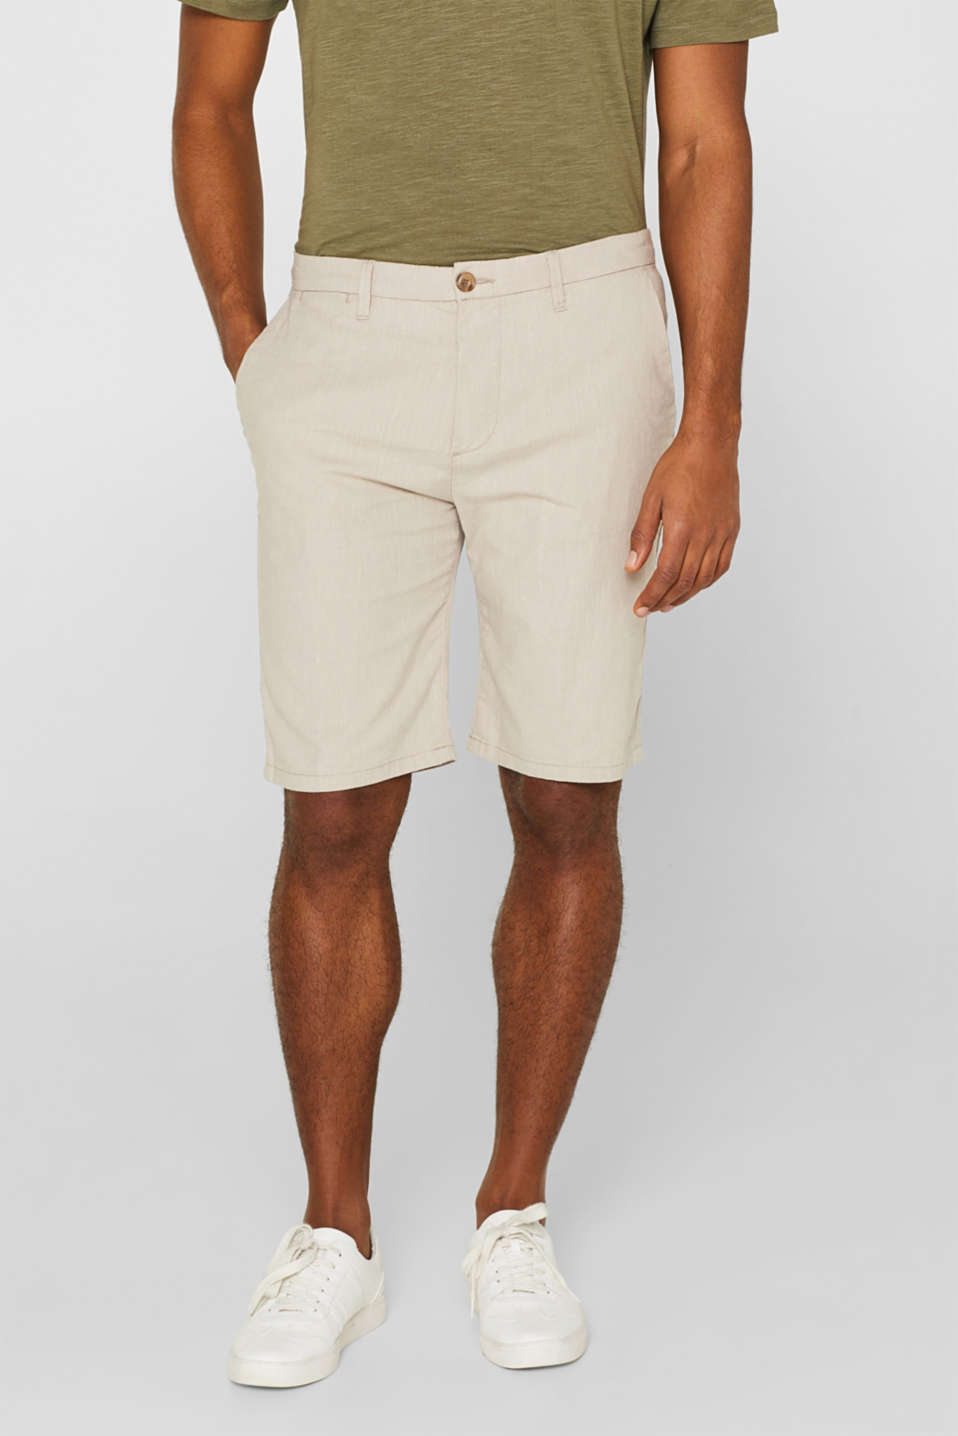 Esprit - Linen blend: shorts with stretch for comfort